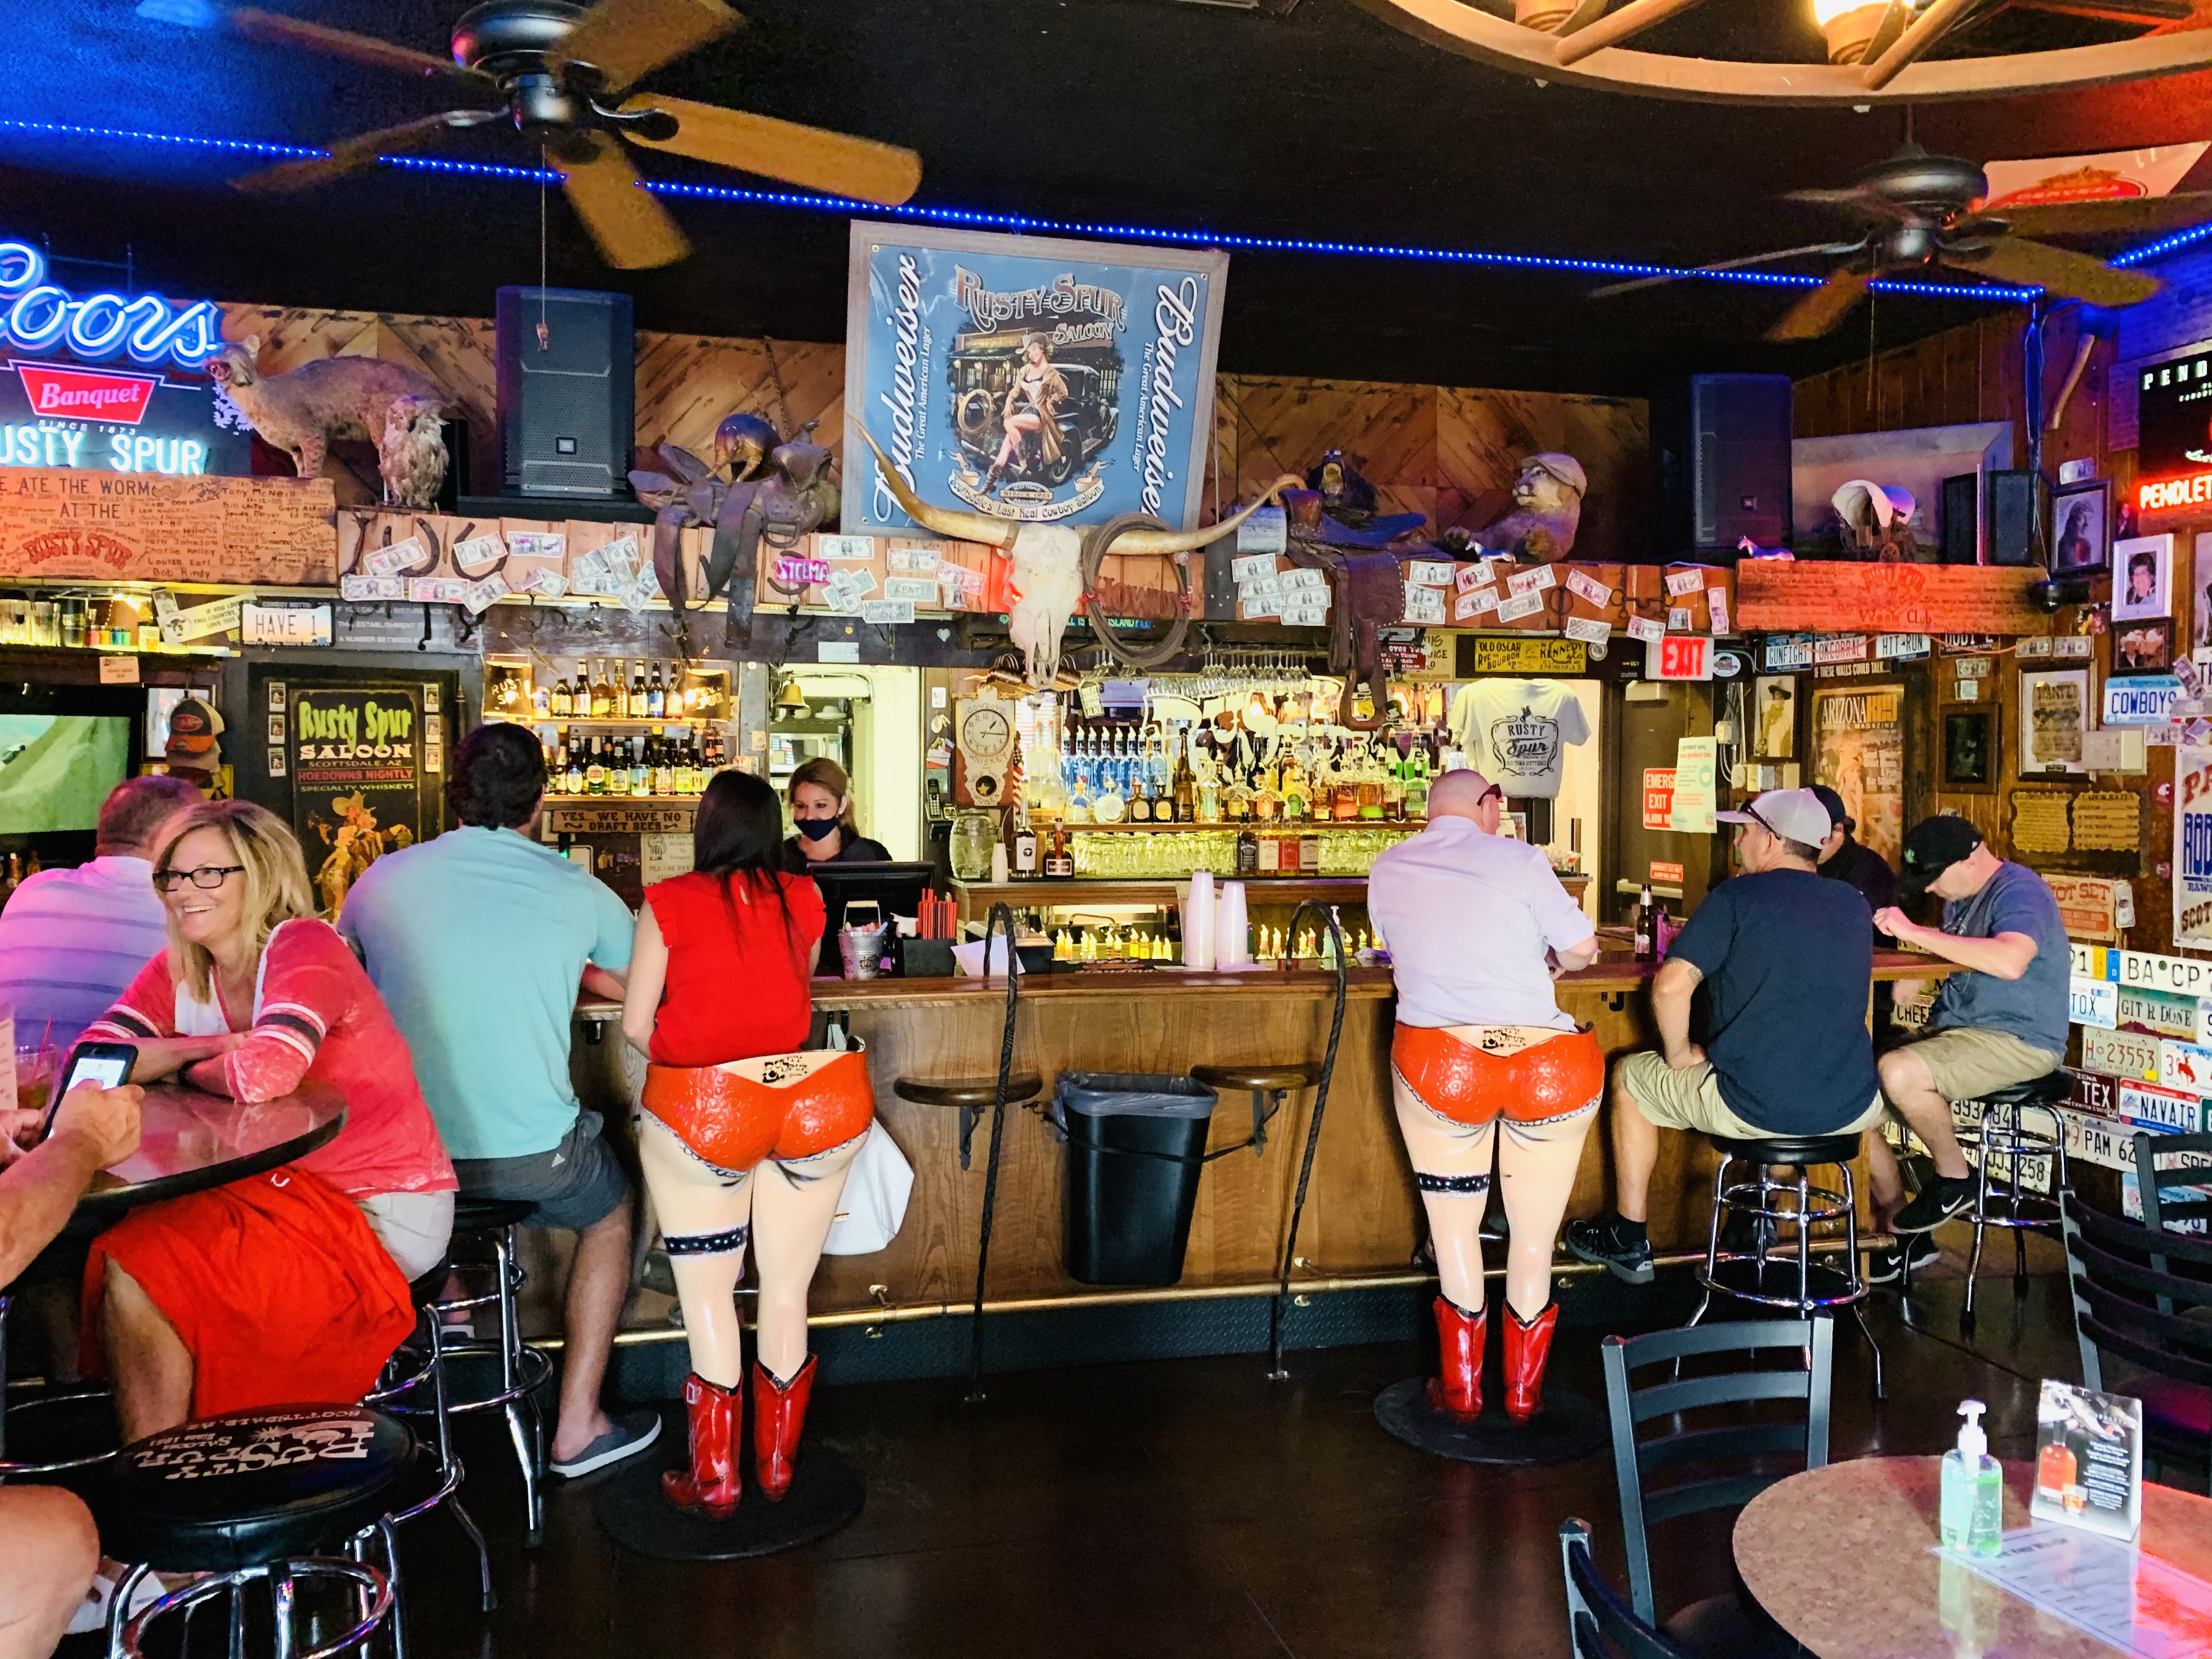 Rusty Spur Saloon:  Best things to do in Old Town Scottsdale from Top U.S. travel blog, Travel With A Plan #scottsdale #arizona #oldtown